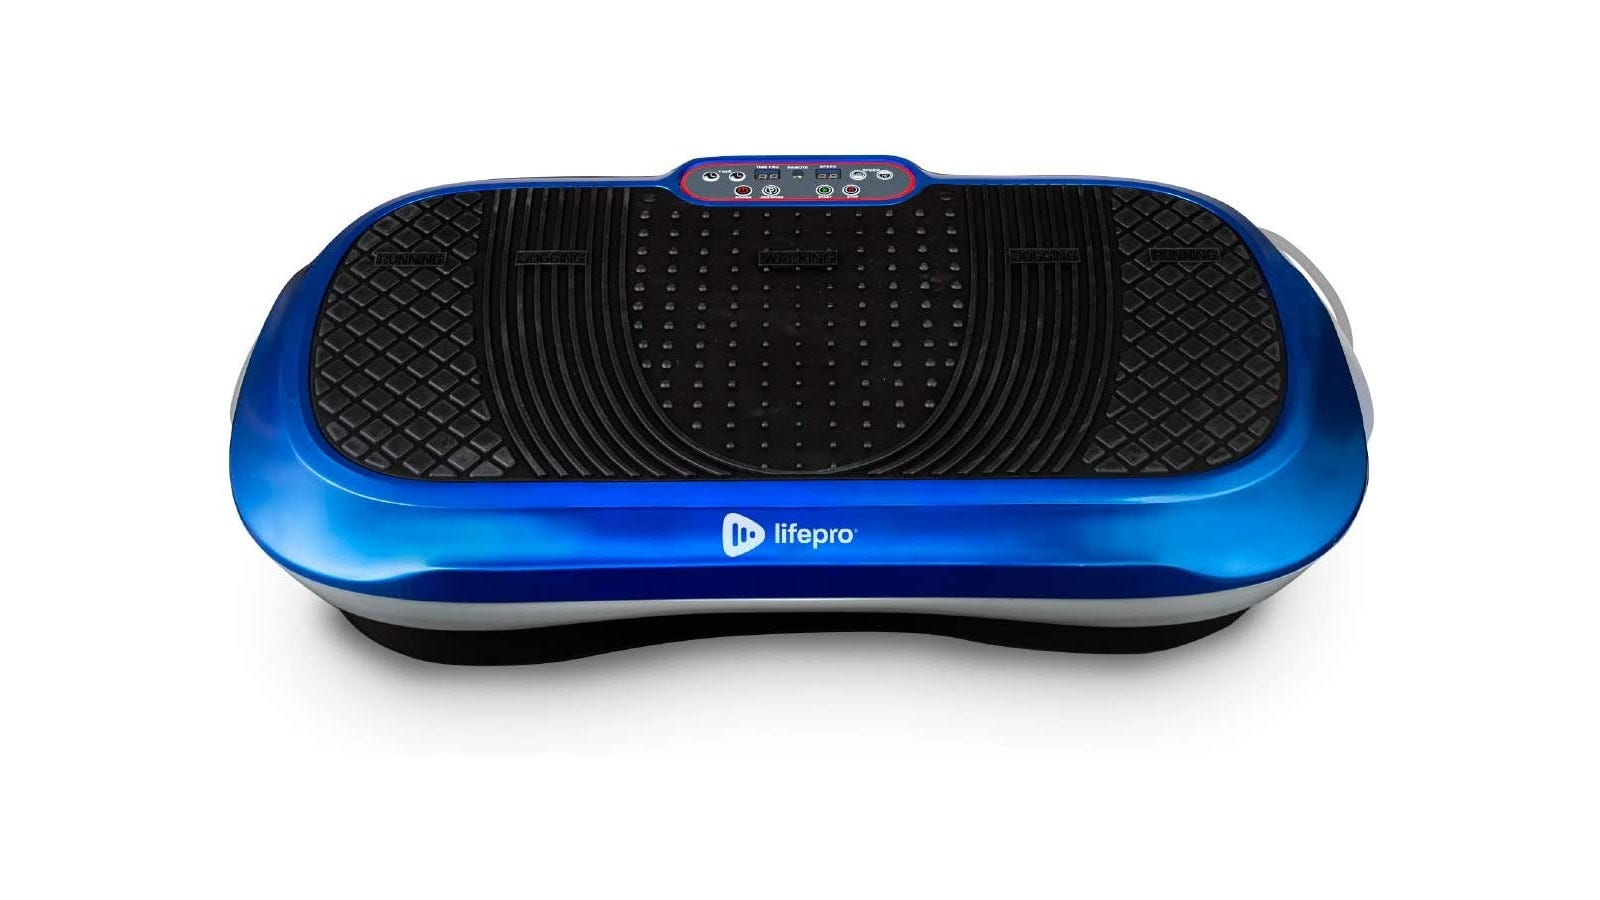 a black and blue lifepro vibration plate with patterned texture on the top piece